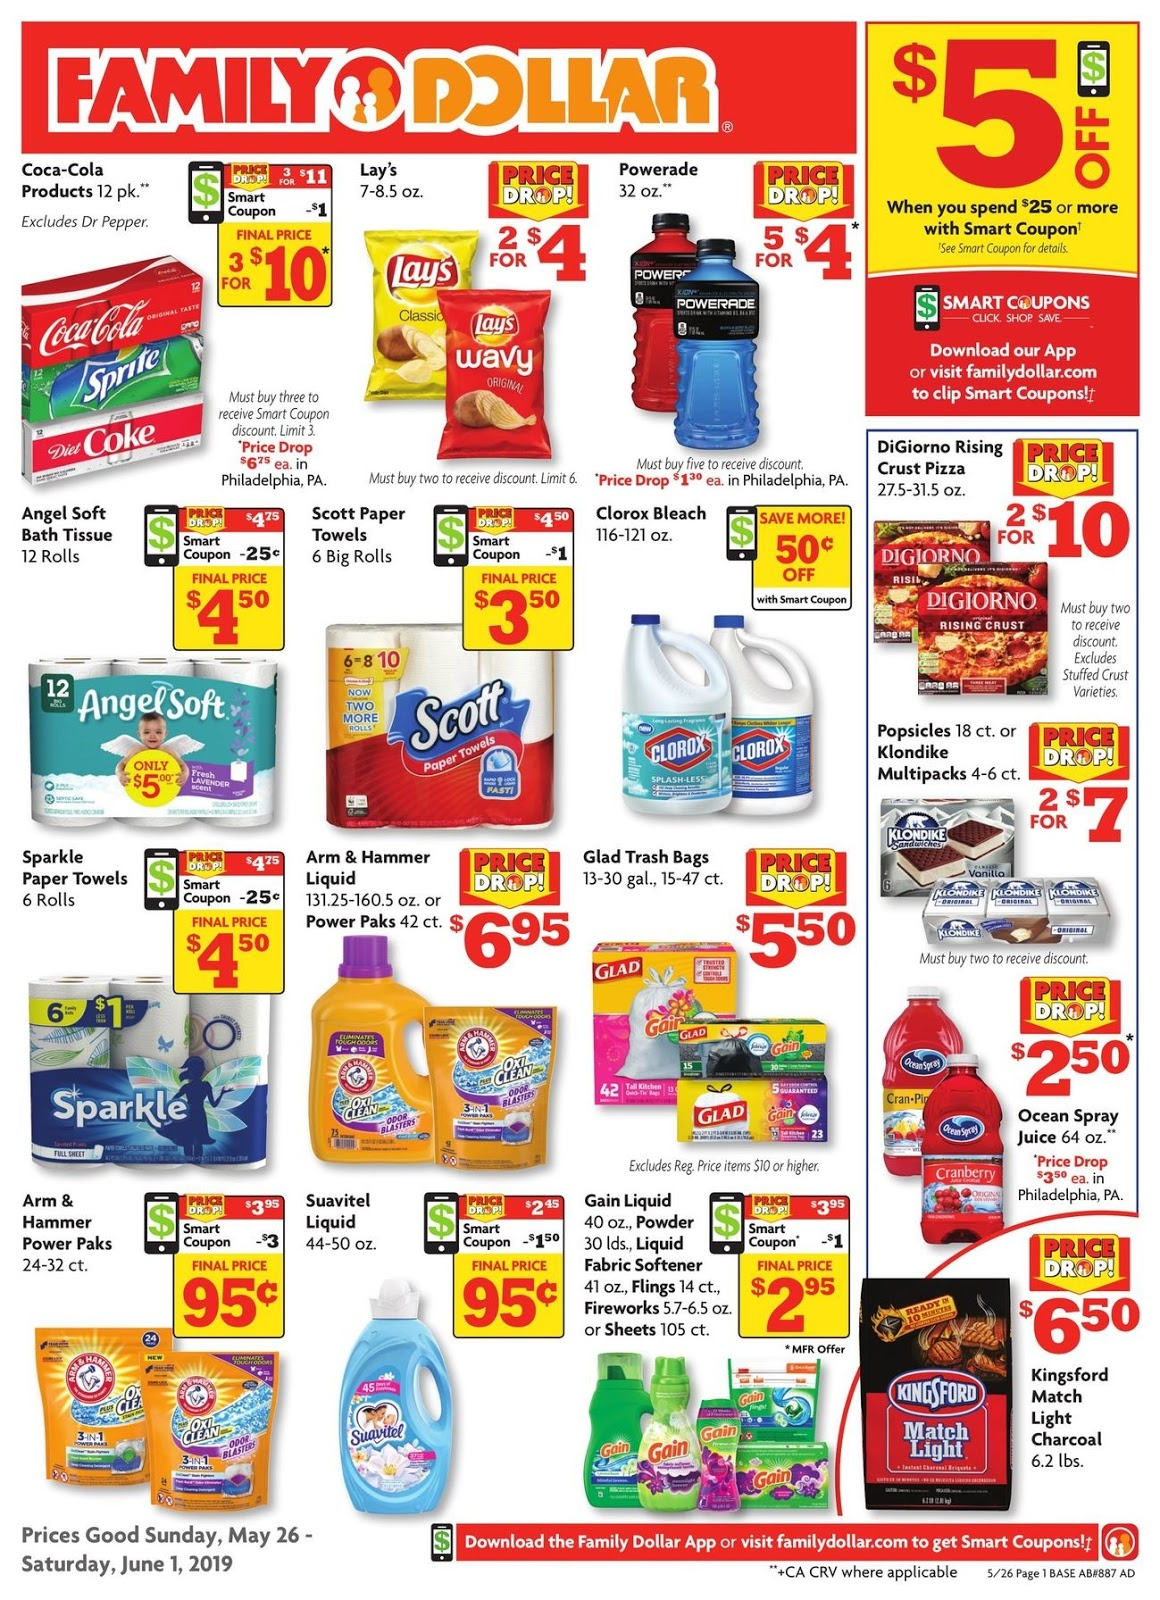 Family Dollar Ad 6 2 19 Weekly June